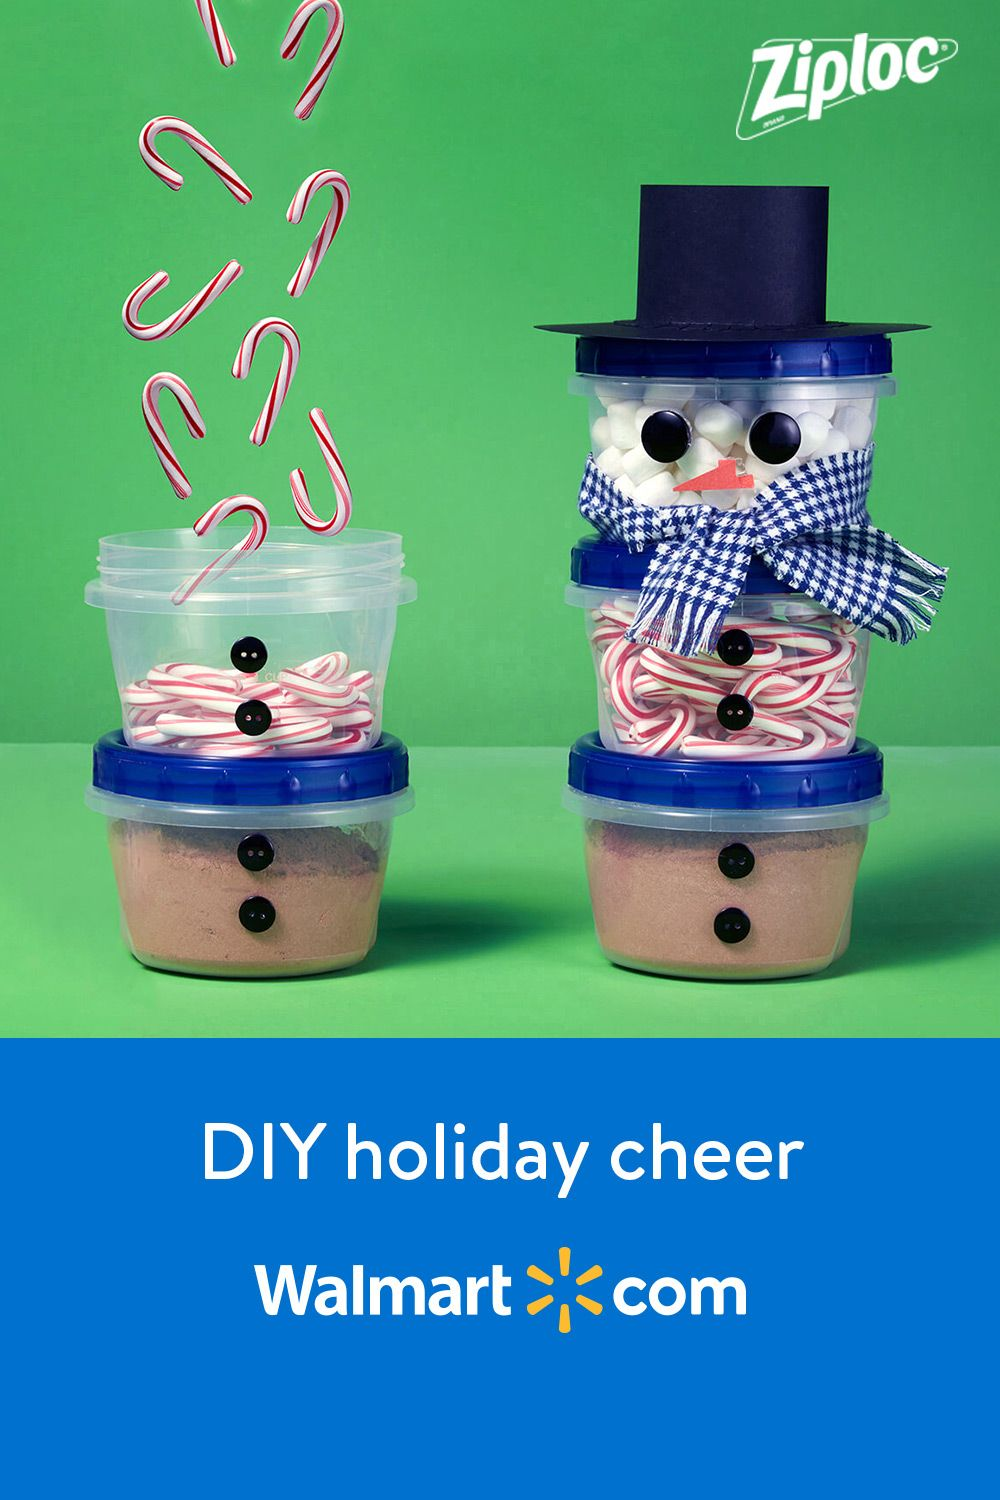 Get Creative With Ziploc Brand Products Christmas Crafts For Gifts Homemade Christmas Gifts Christmas Crafts